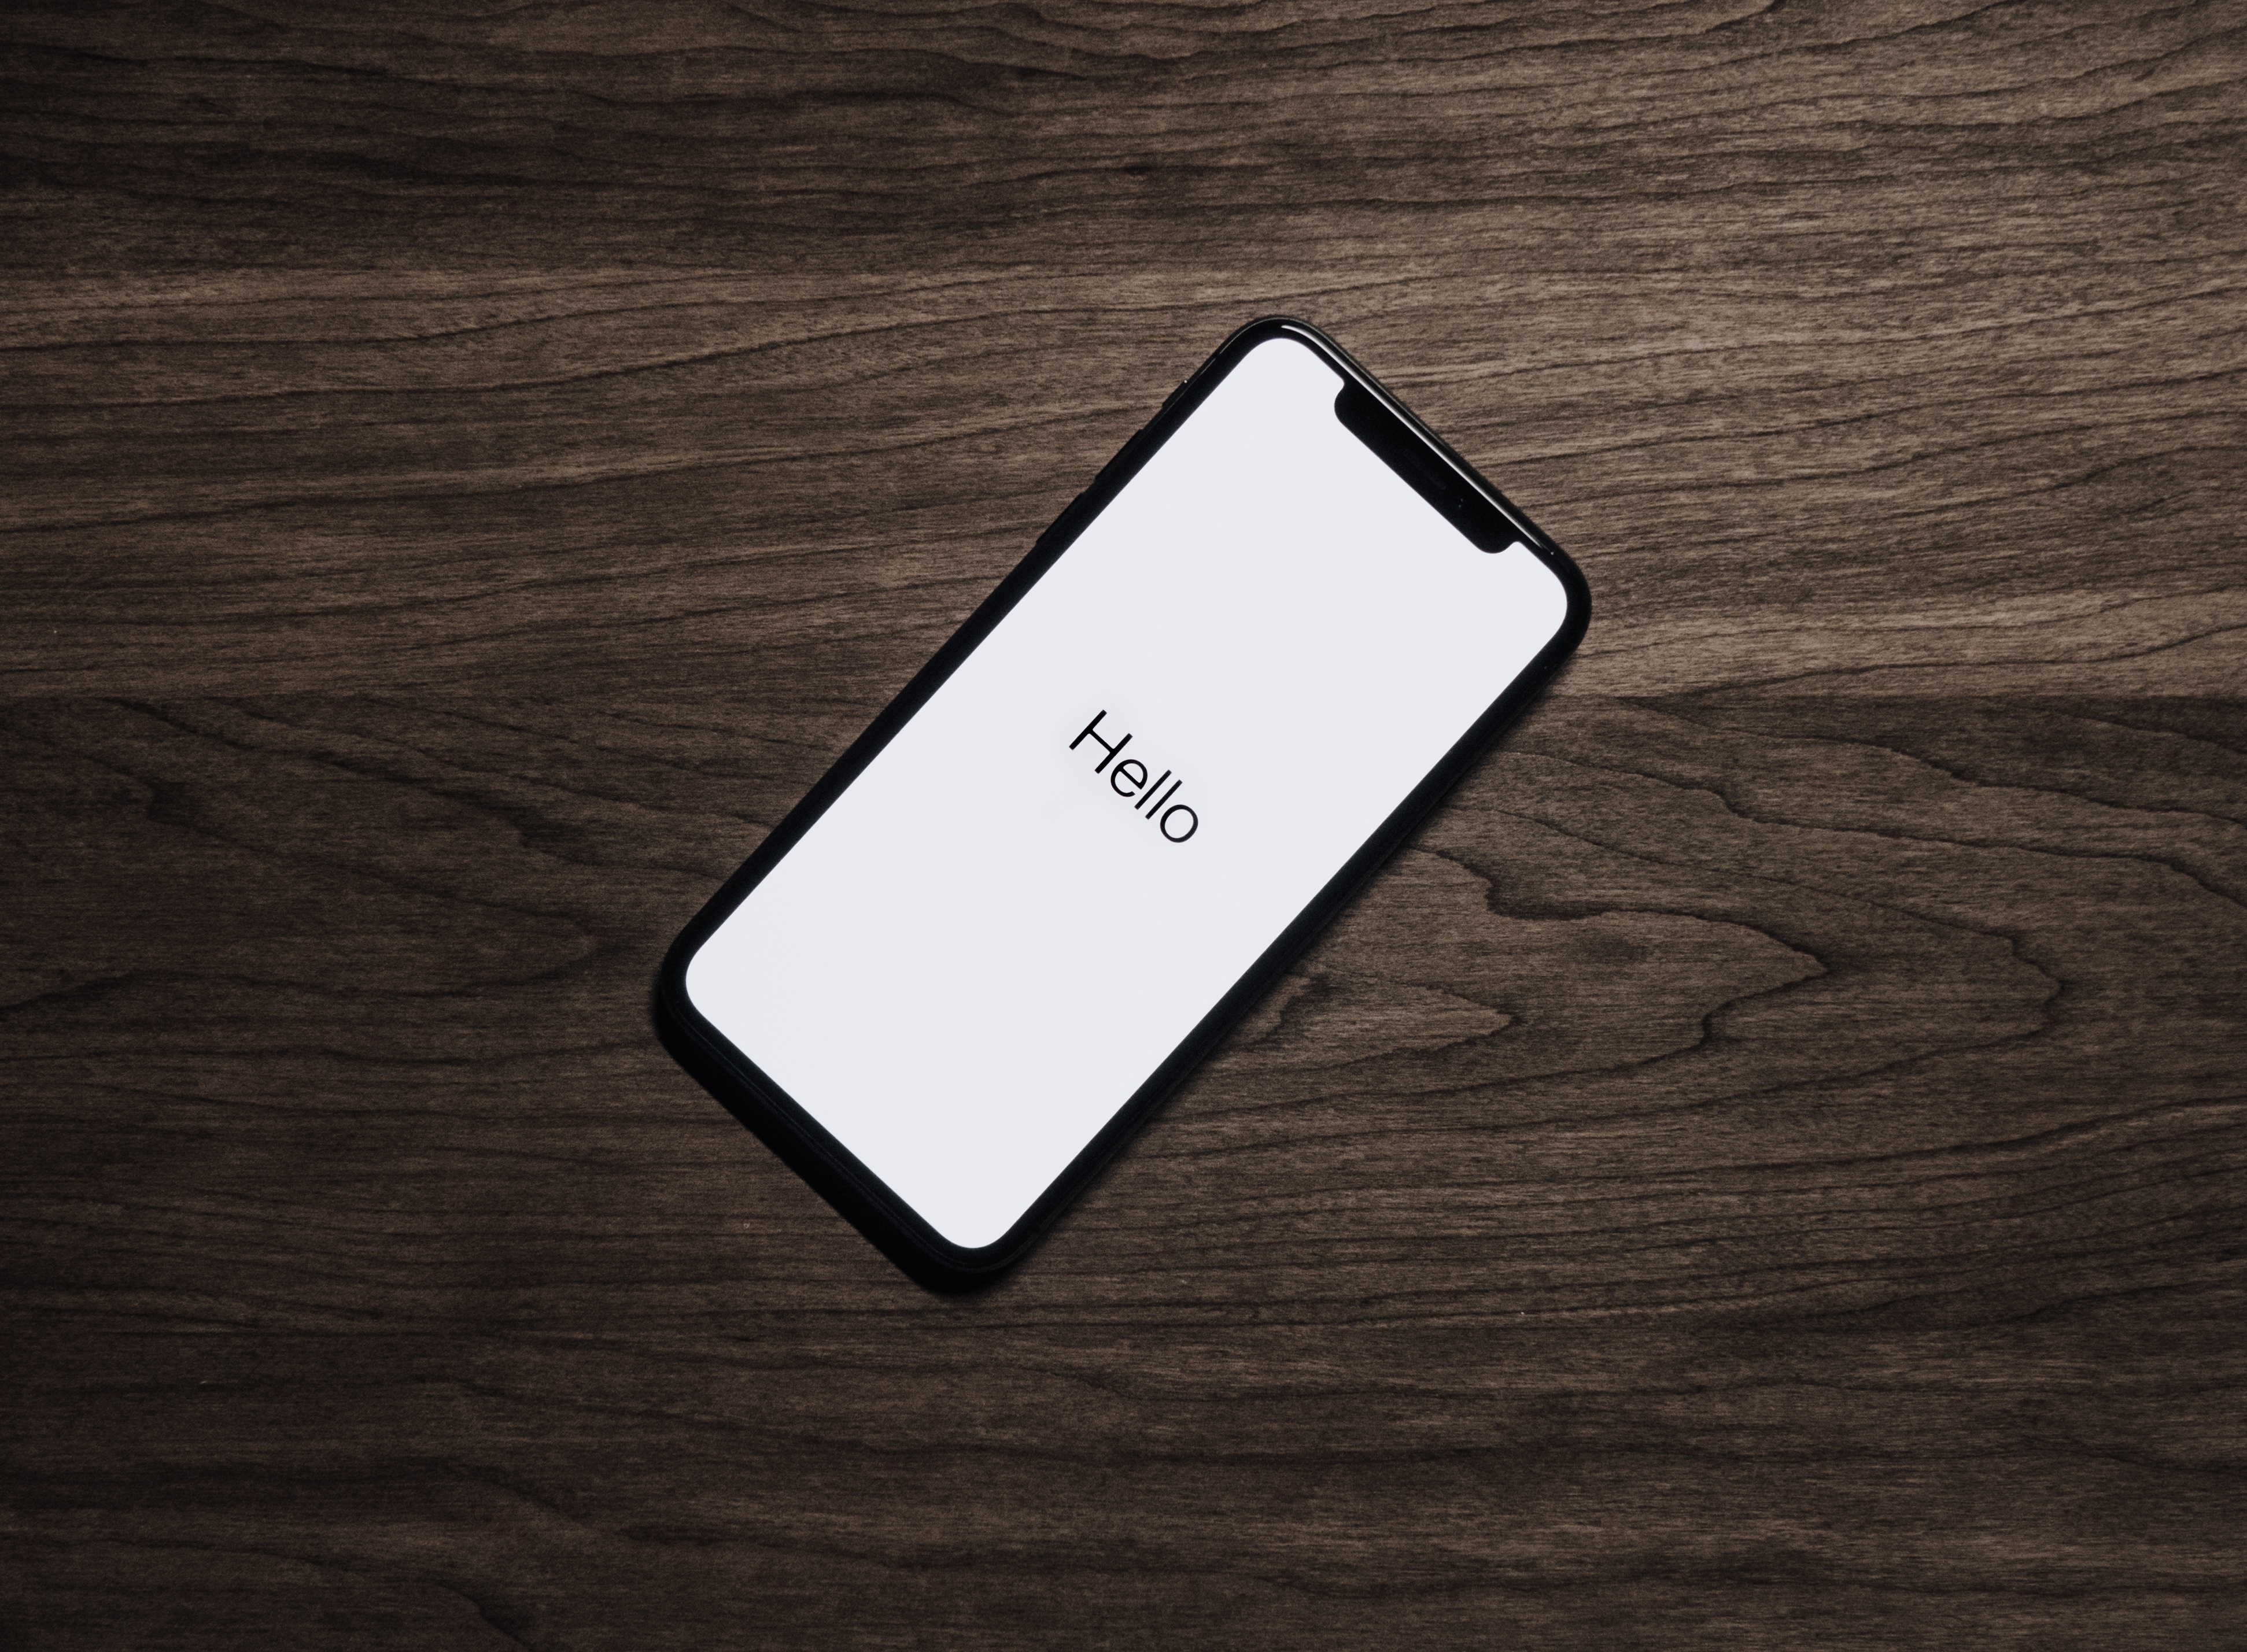 2018 Q1 HYLA Blog 1- Education on device trade-ins- What we've learned from the iPhone 8.jpeg